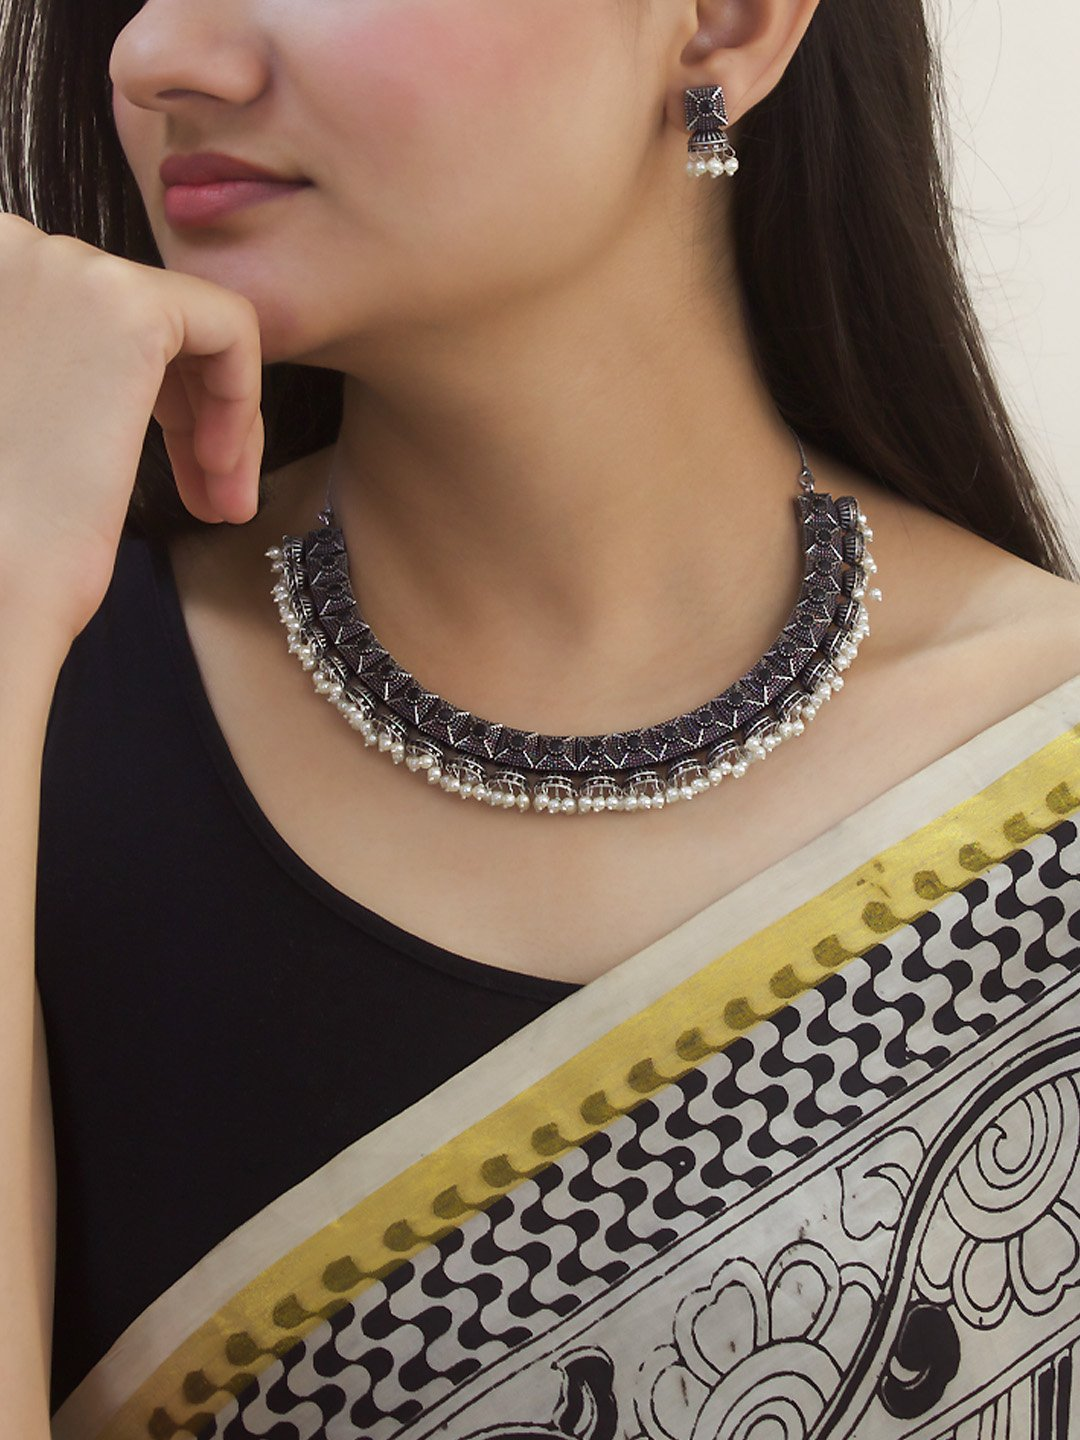 Oxidised Silver Plated Geometric Design With Hanging Pearls Choker Necklace Set